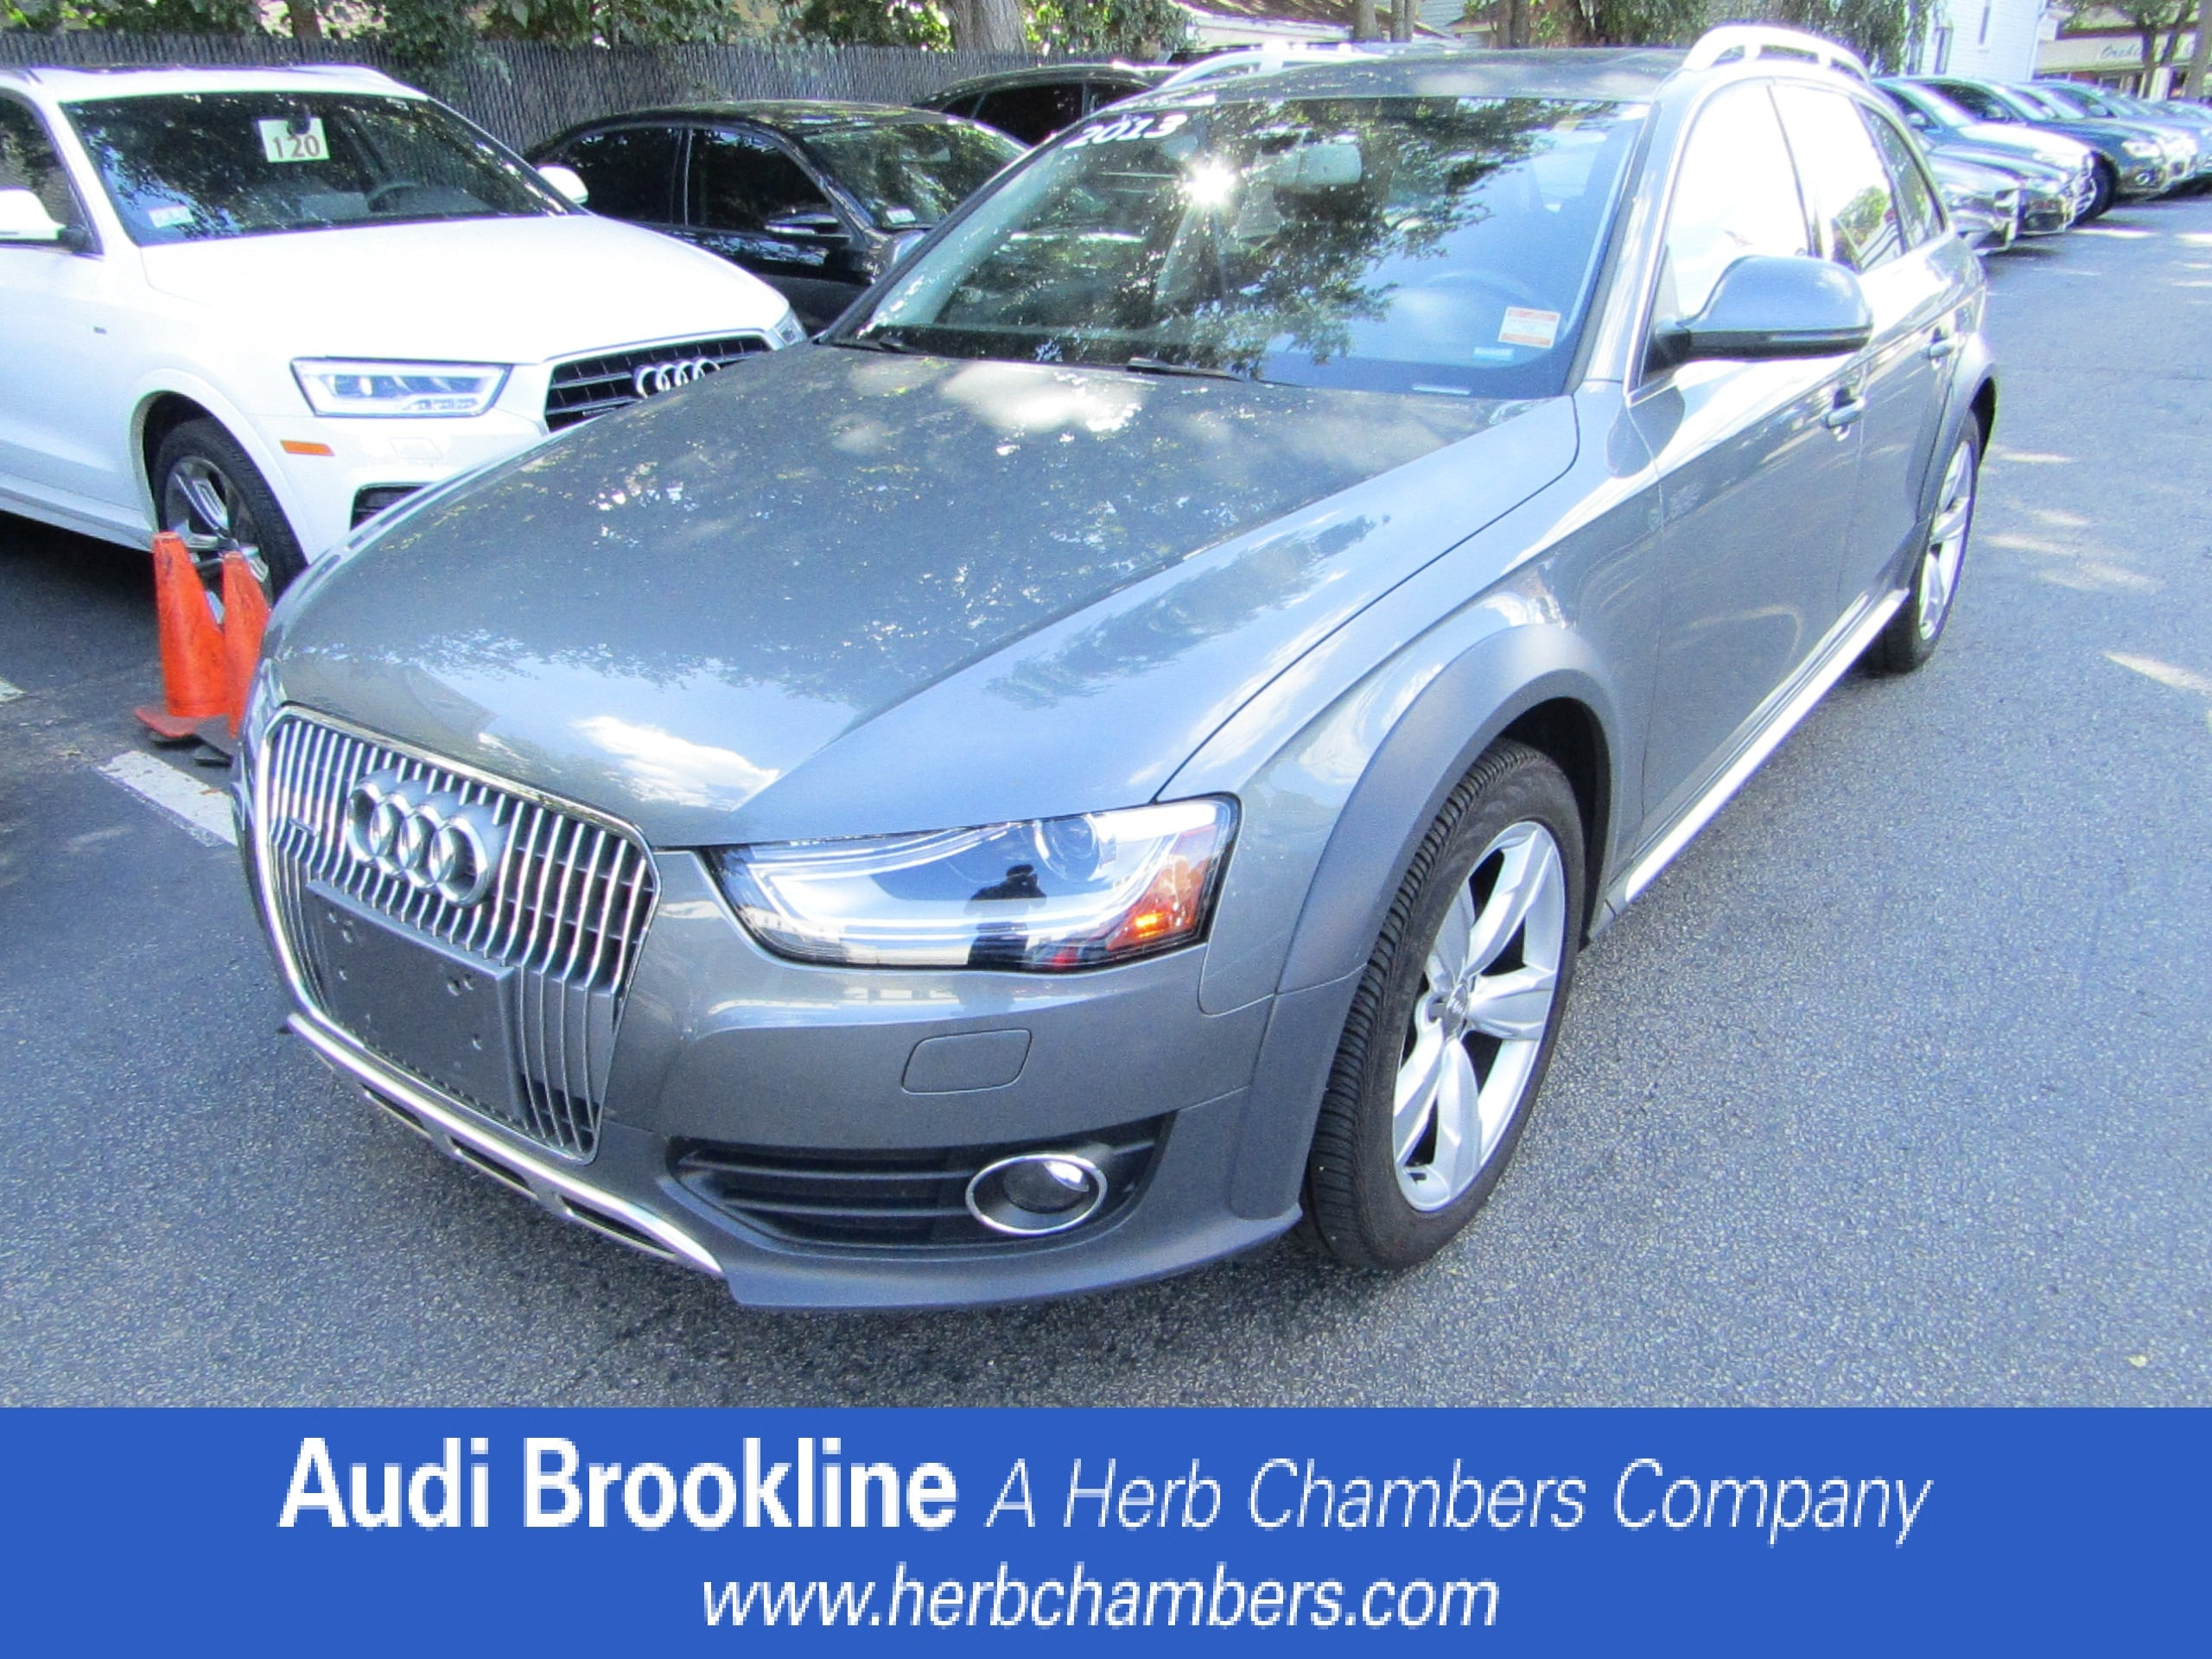 Certified Pre-Owned 2013 Audi Allroad Premium Plus Station Wagon for sale in the Boston MA area